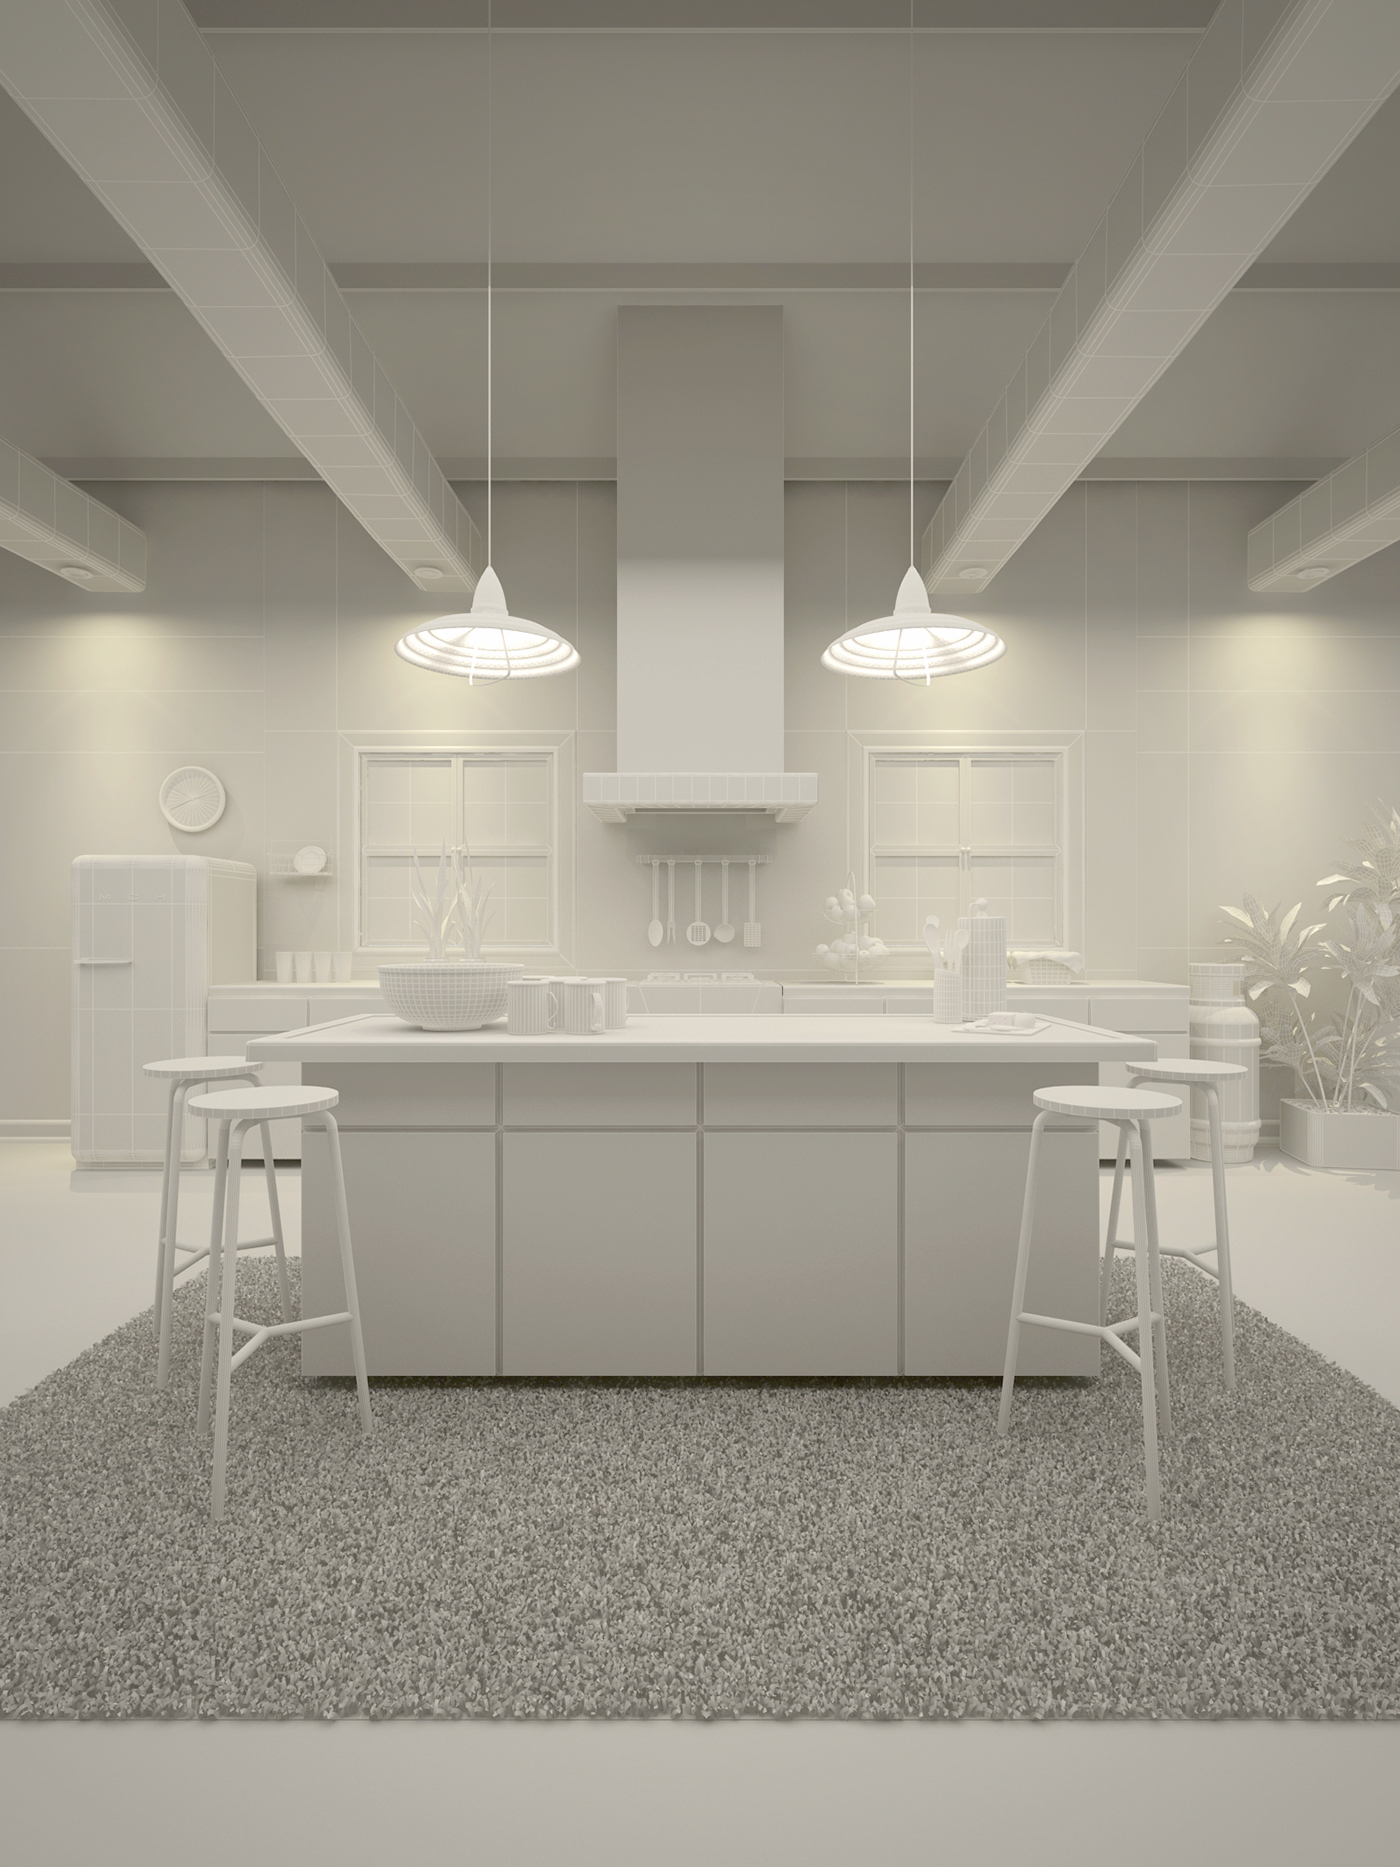 kitchen design visualizer kitchen visualization on behance 1400